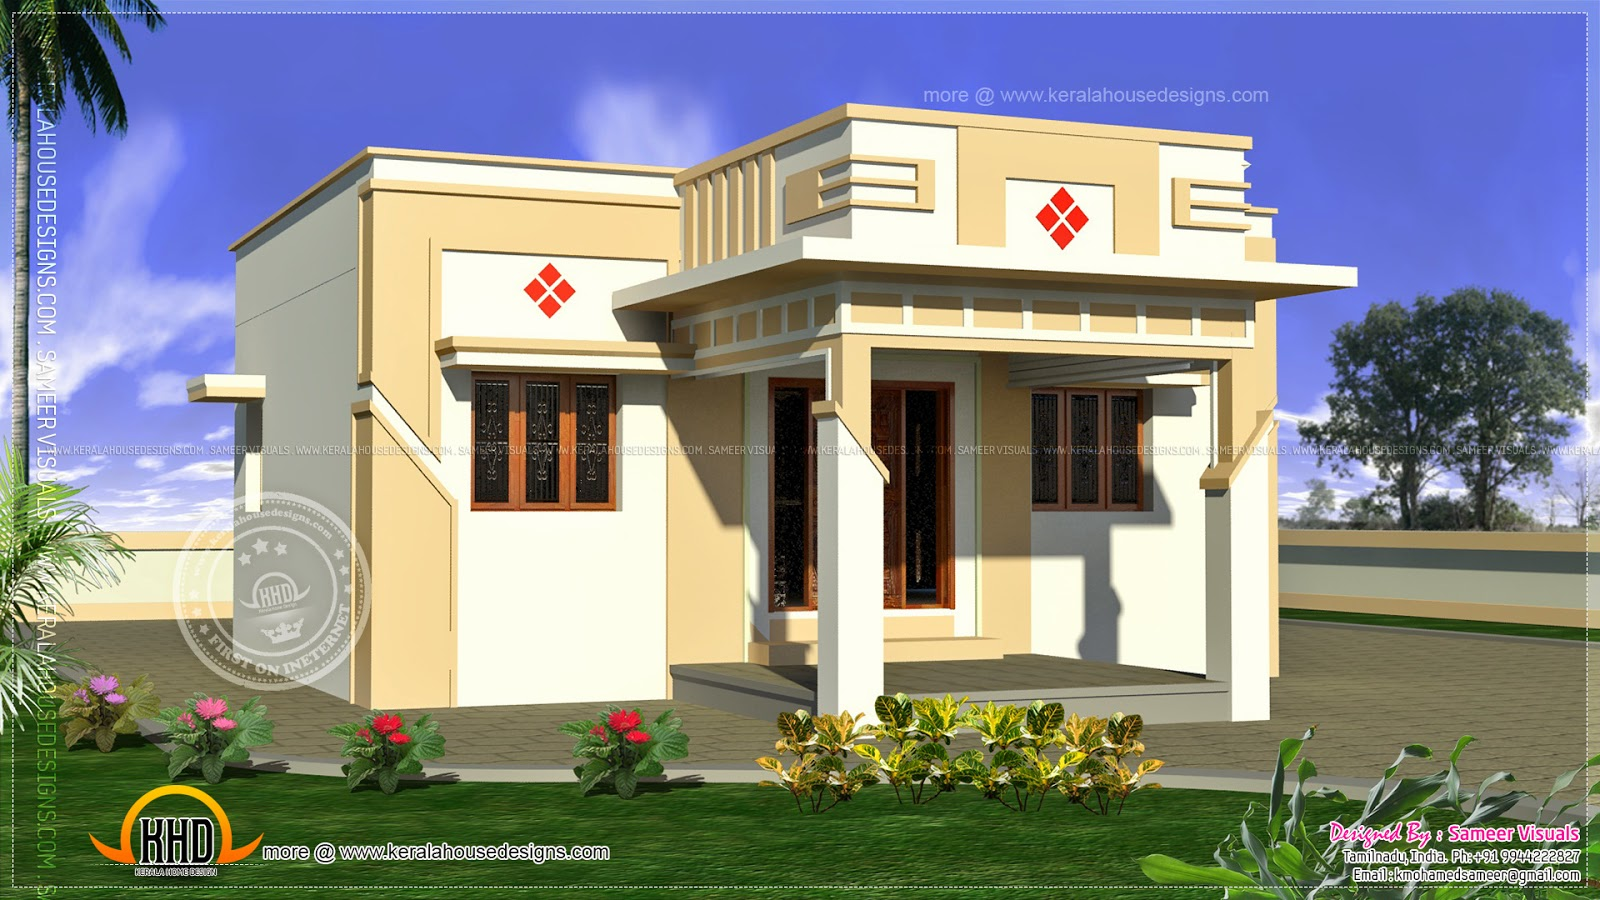 Low cost tamilnadu house kerala home design and floor plans for Tamilnadu home design photos